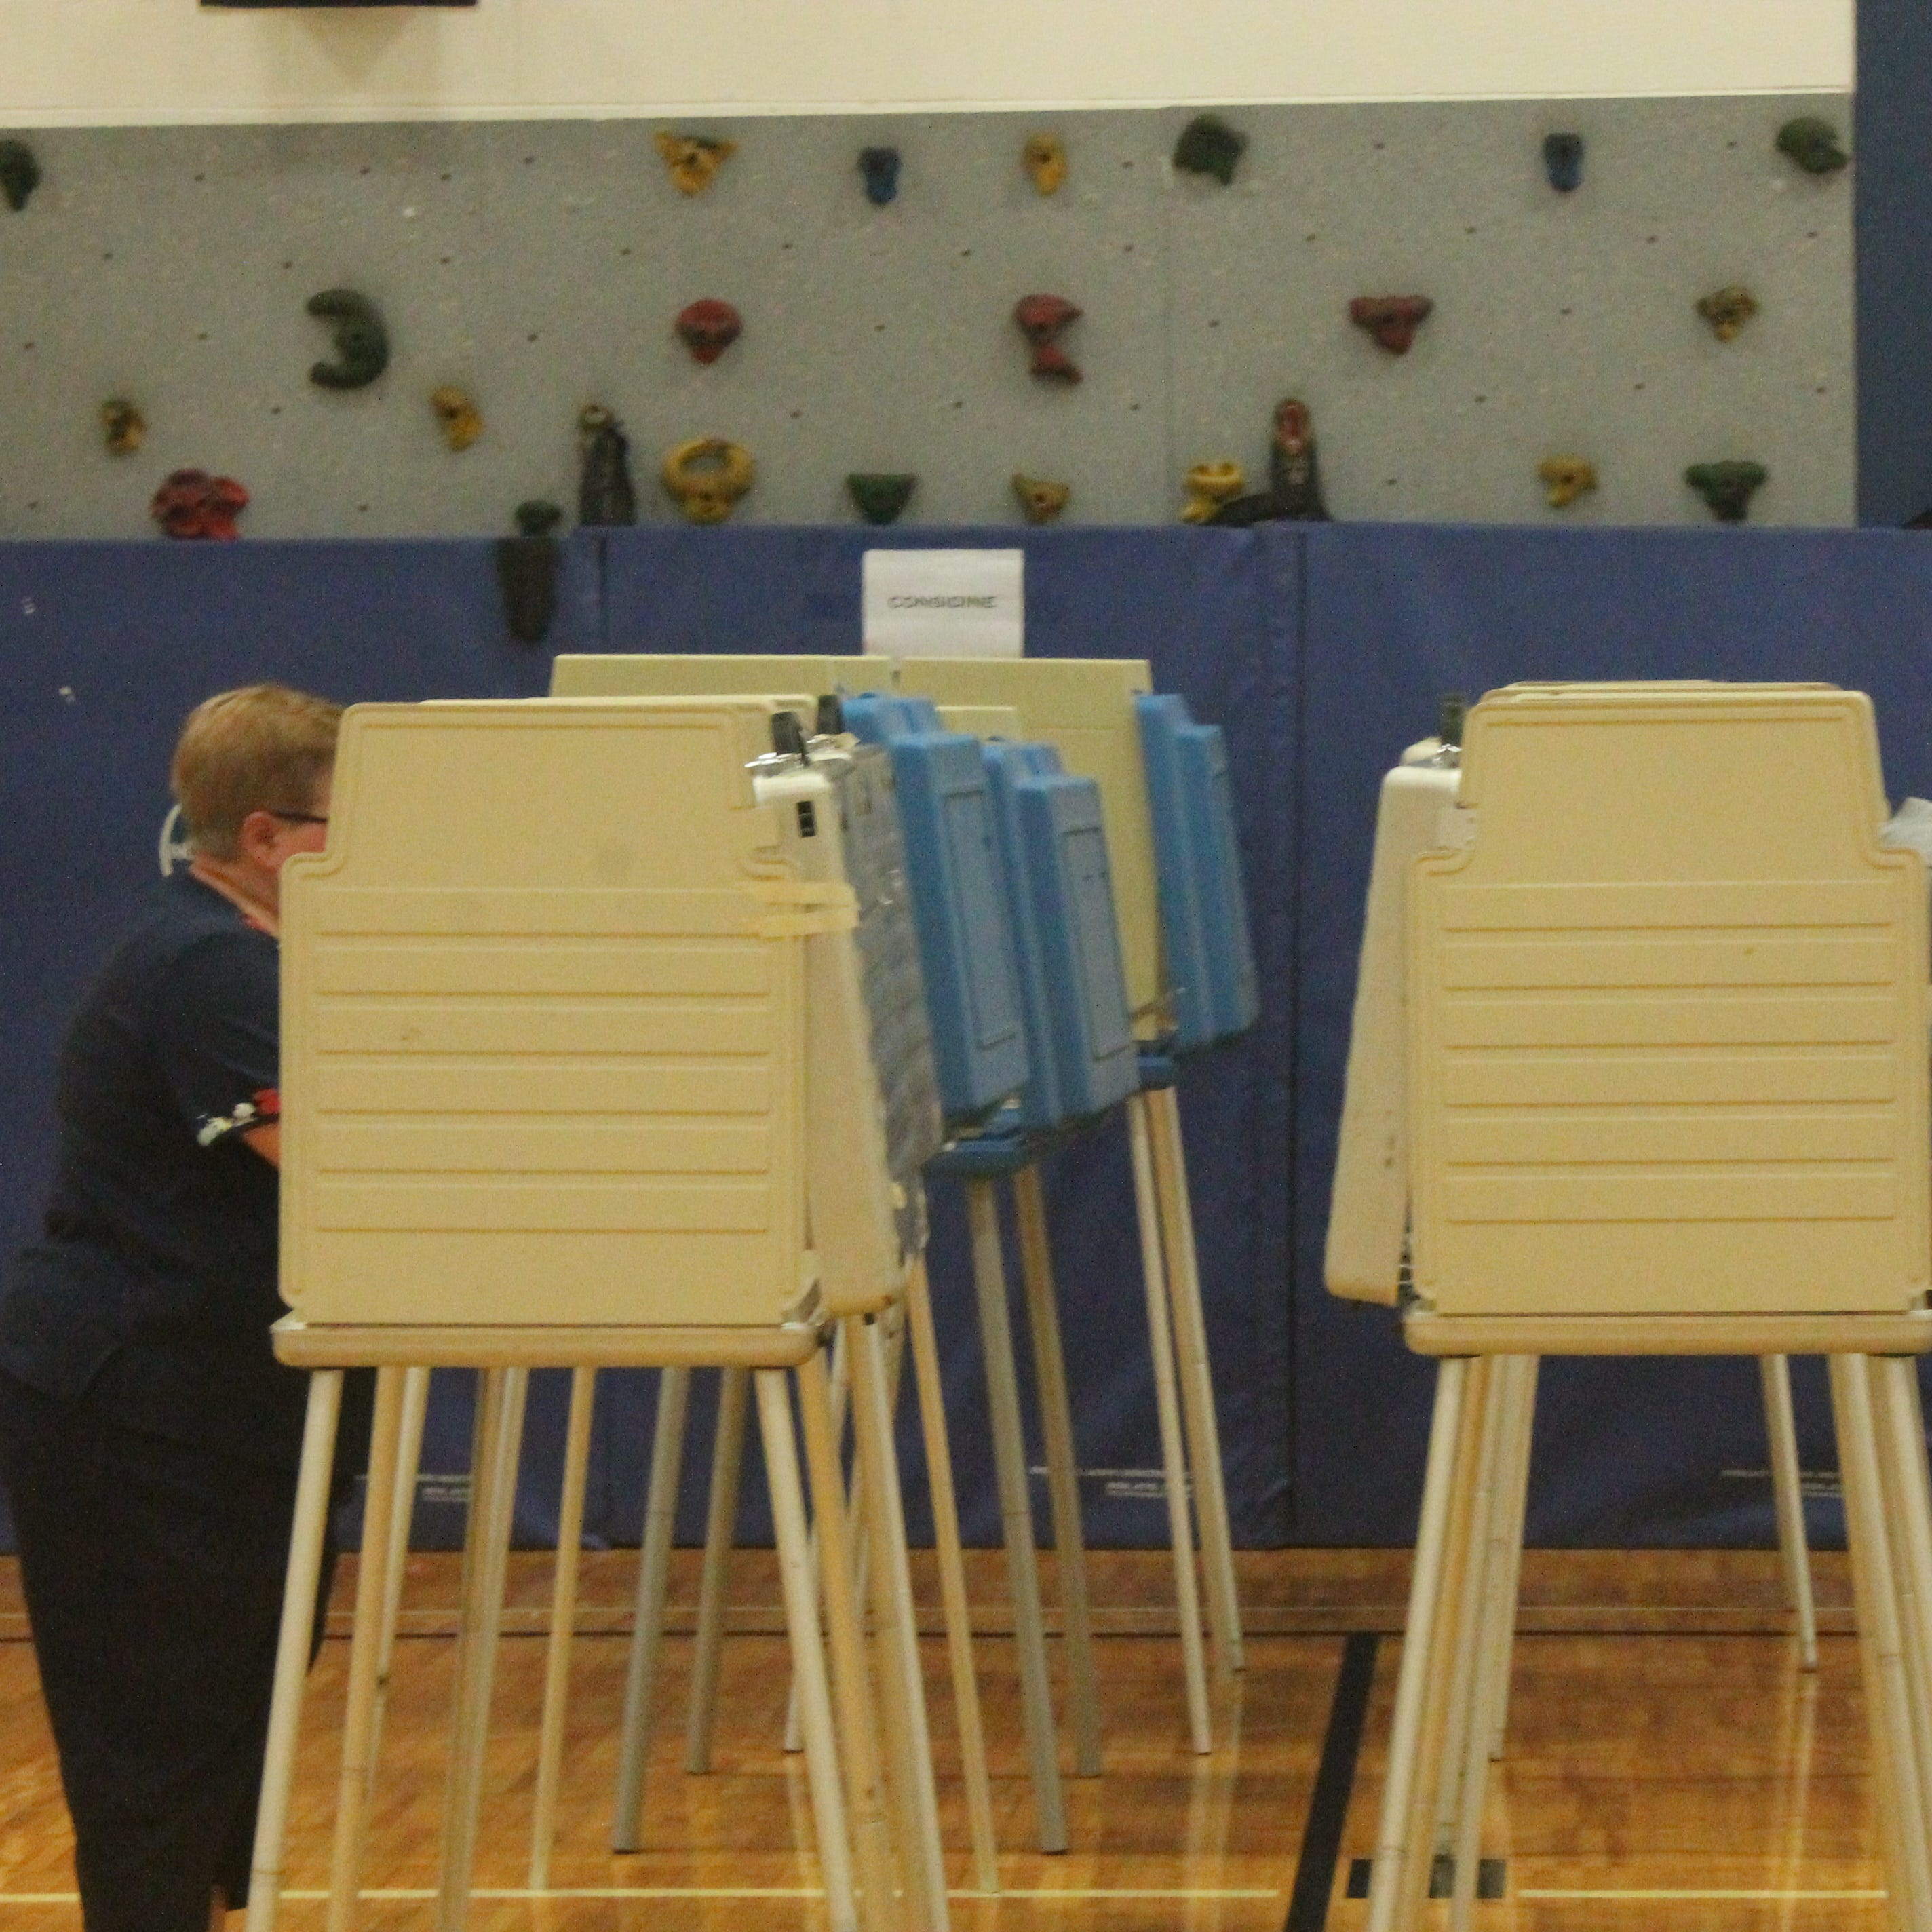 Livonia buying new election machines to count absentee ballots faster for Nov. 6 election